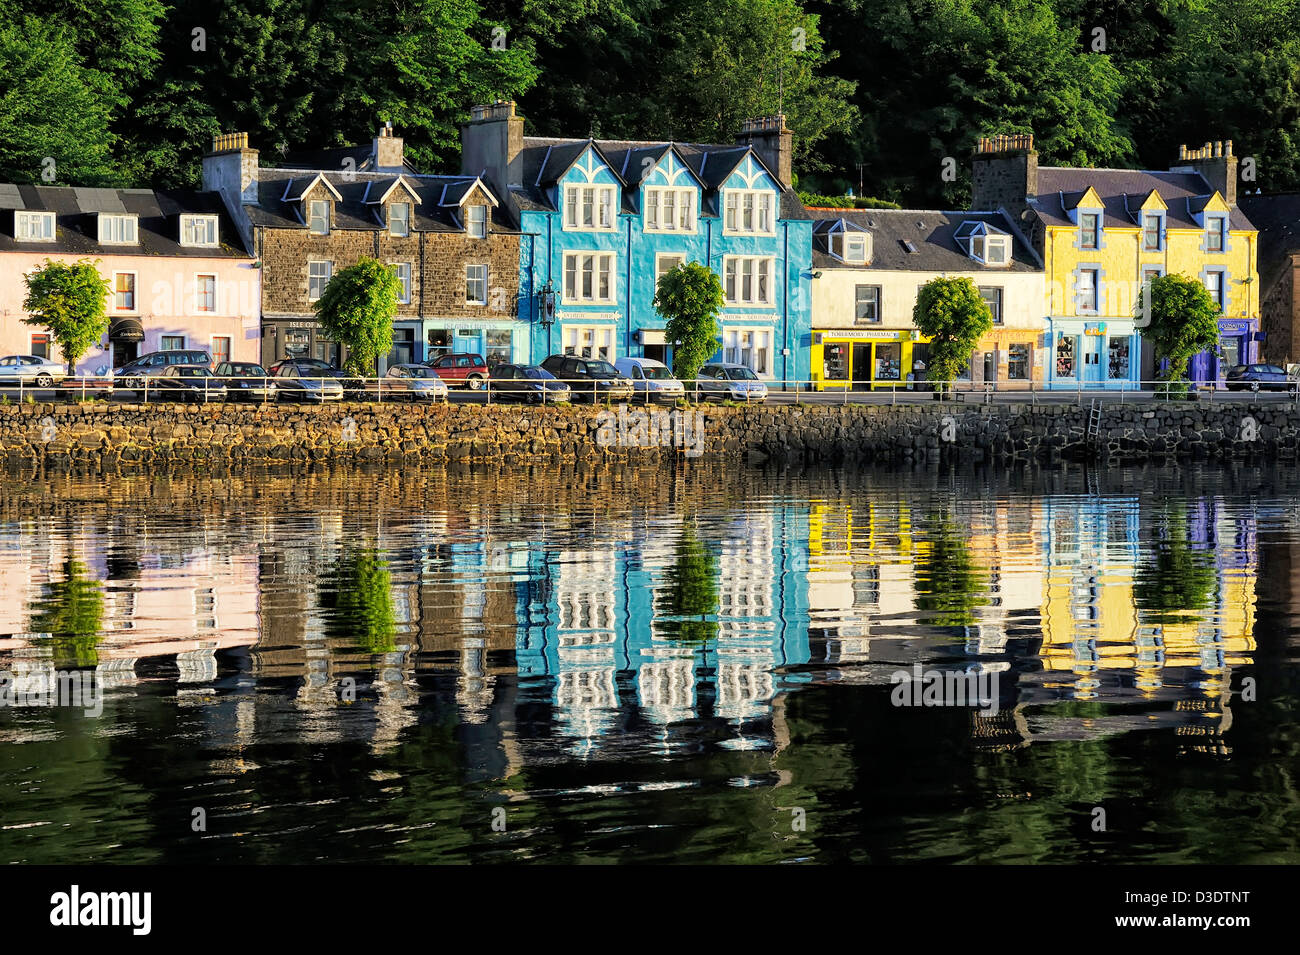 colorful houses & shops, tobermory, mull, scotland - Stock Image